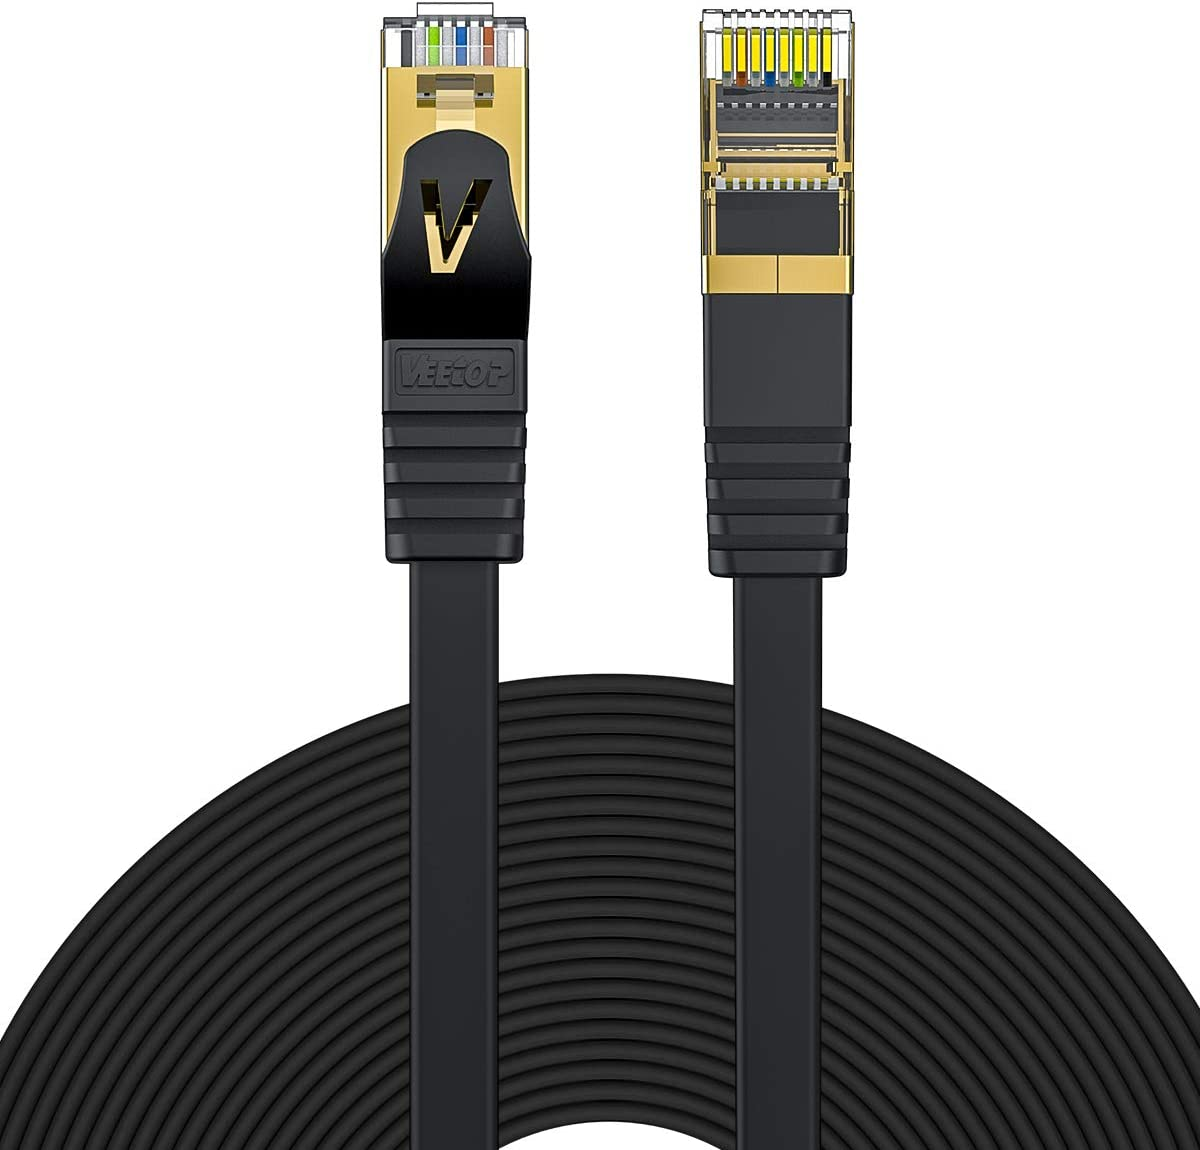 Cat7 Ethernet Cable,Veetop 164ft/50m Cat 7 Network Cable High Speed 10 Gbps Internet Cord Flat Ethernet Wire with Shielded RJ45 Connectors for Computer Laptop Router Modem Switch Box